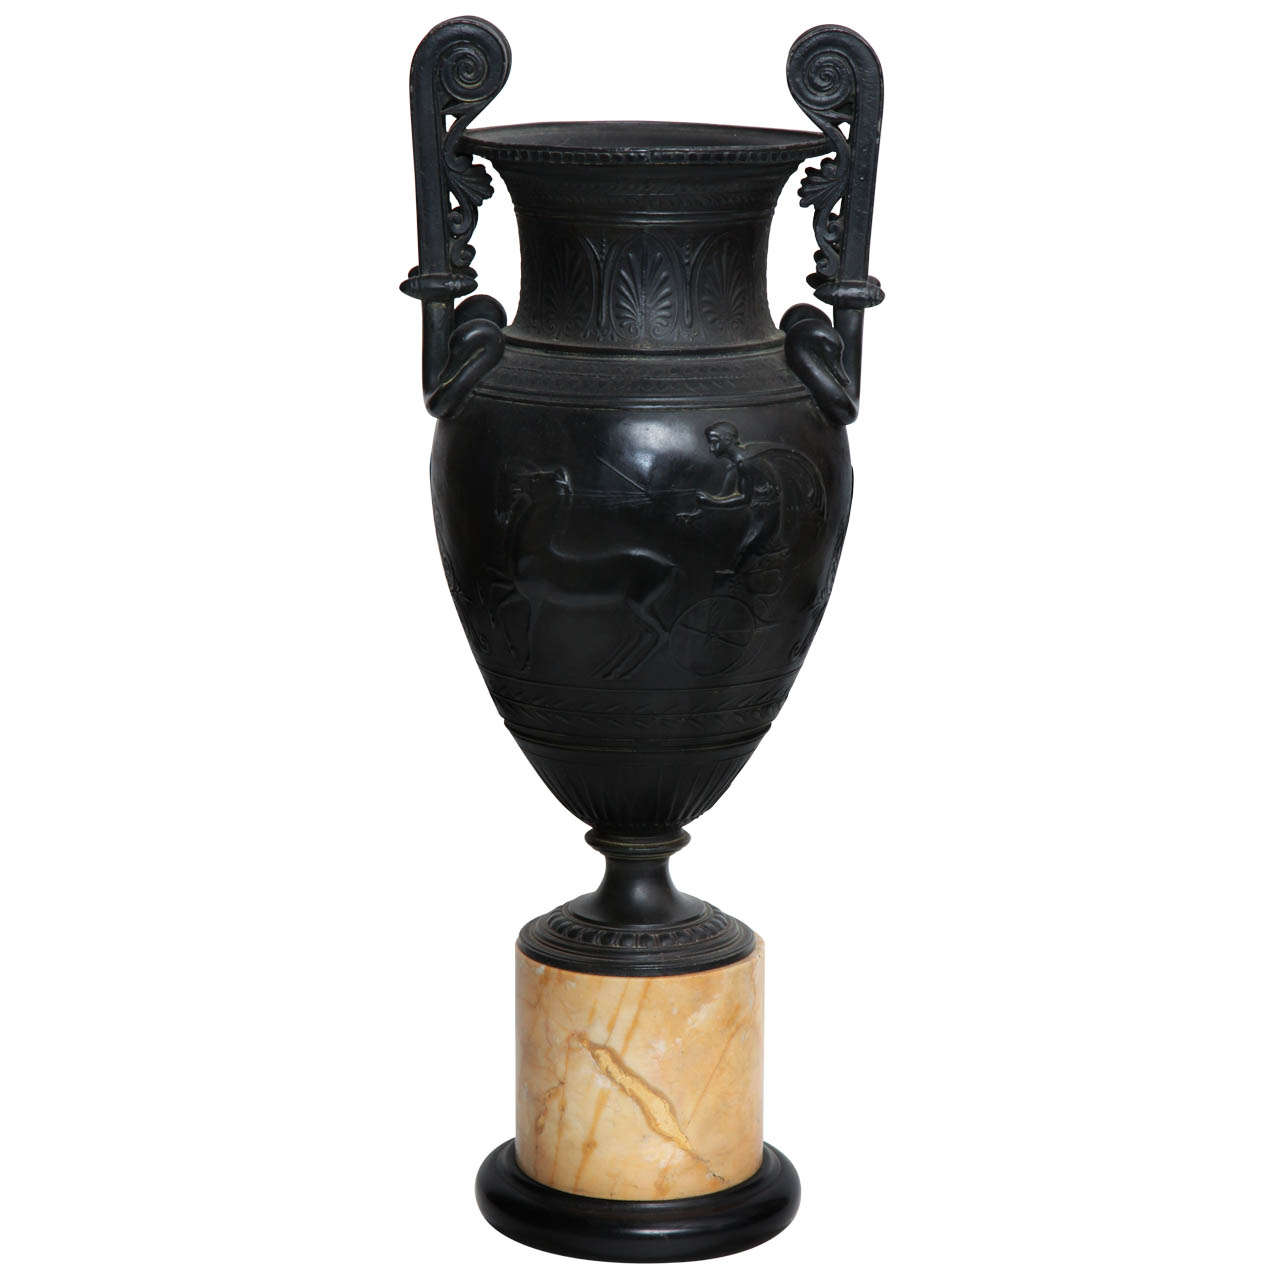 19th Century French, Neo-Classical Urn